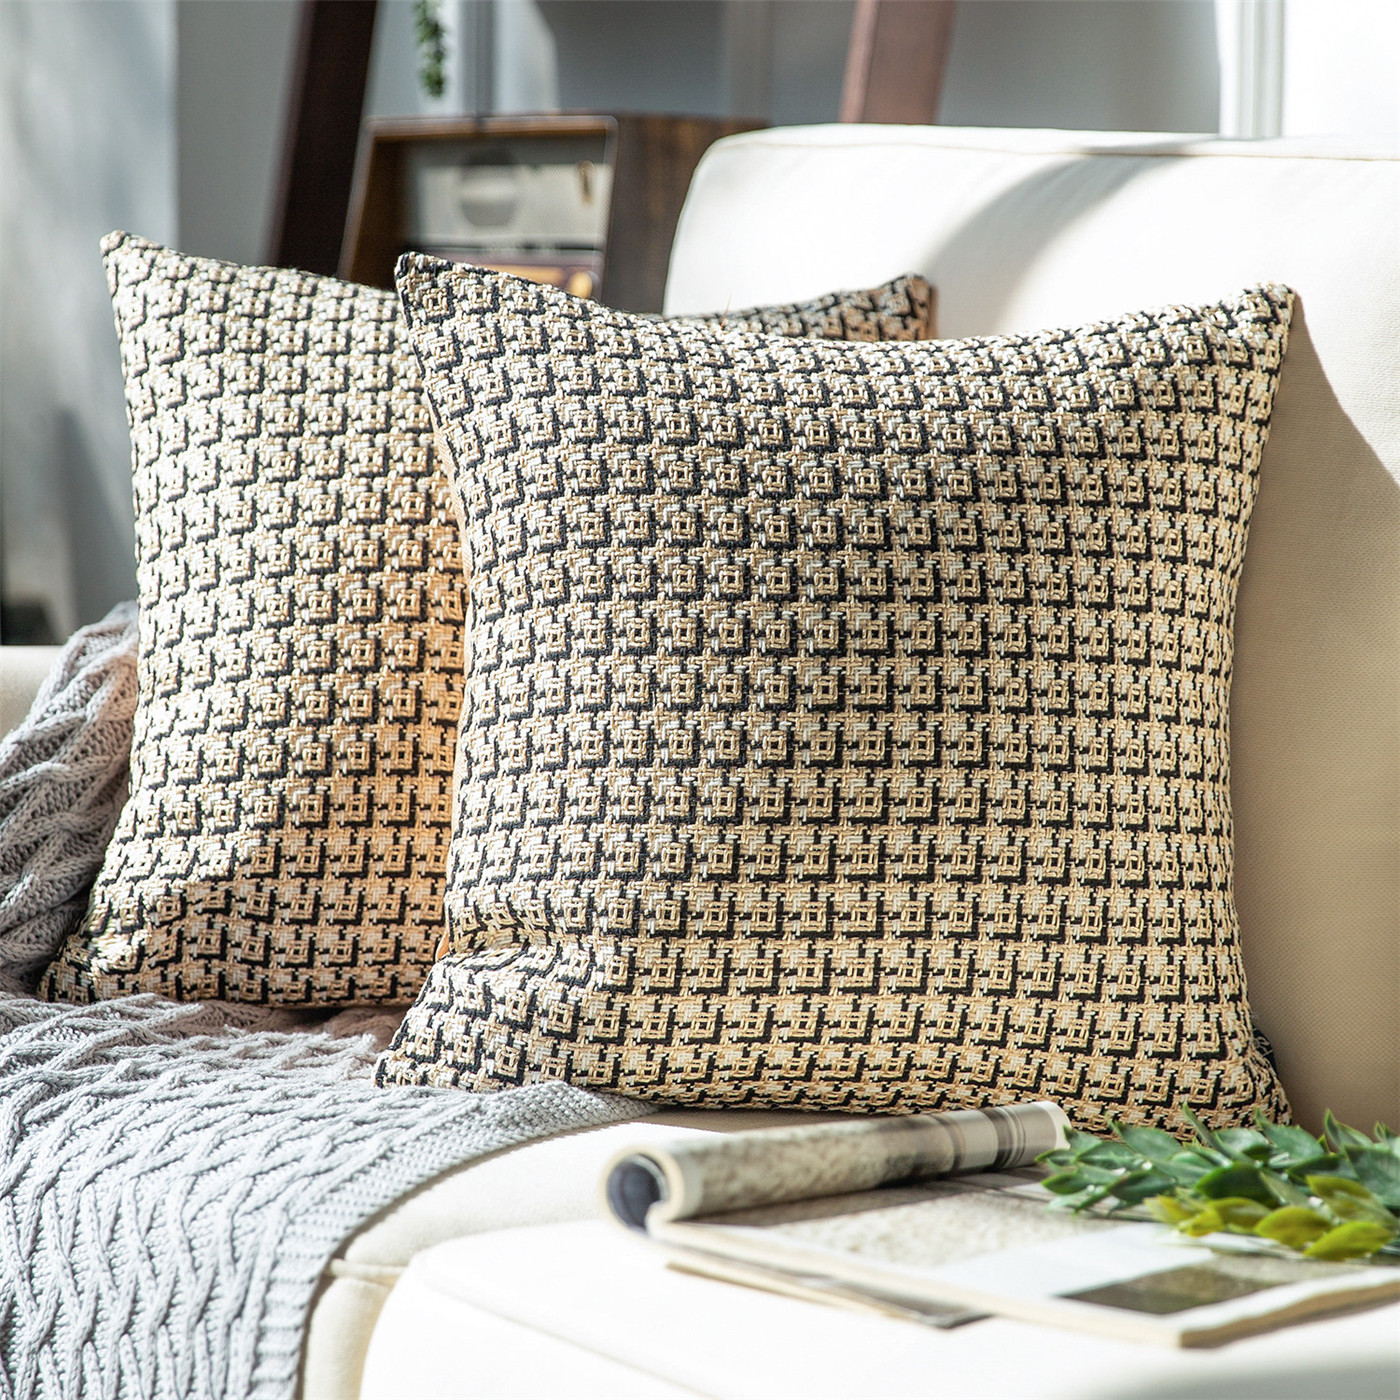 Phantoscope Classic Woven Textured Geometric Houndstooth Pattern Series Decorative Throw Pillow 18 X 18 Light Coffee 2 Pack Walmart Com Walmart Com